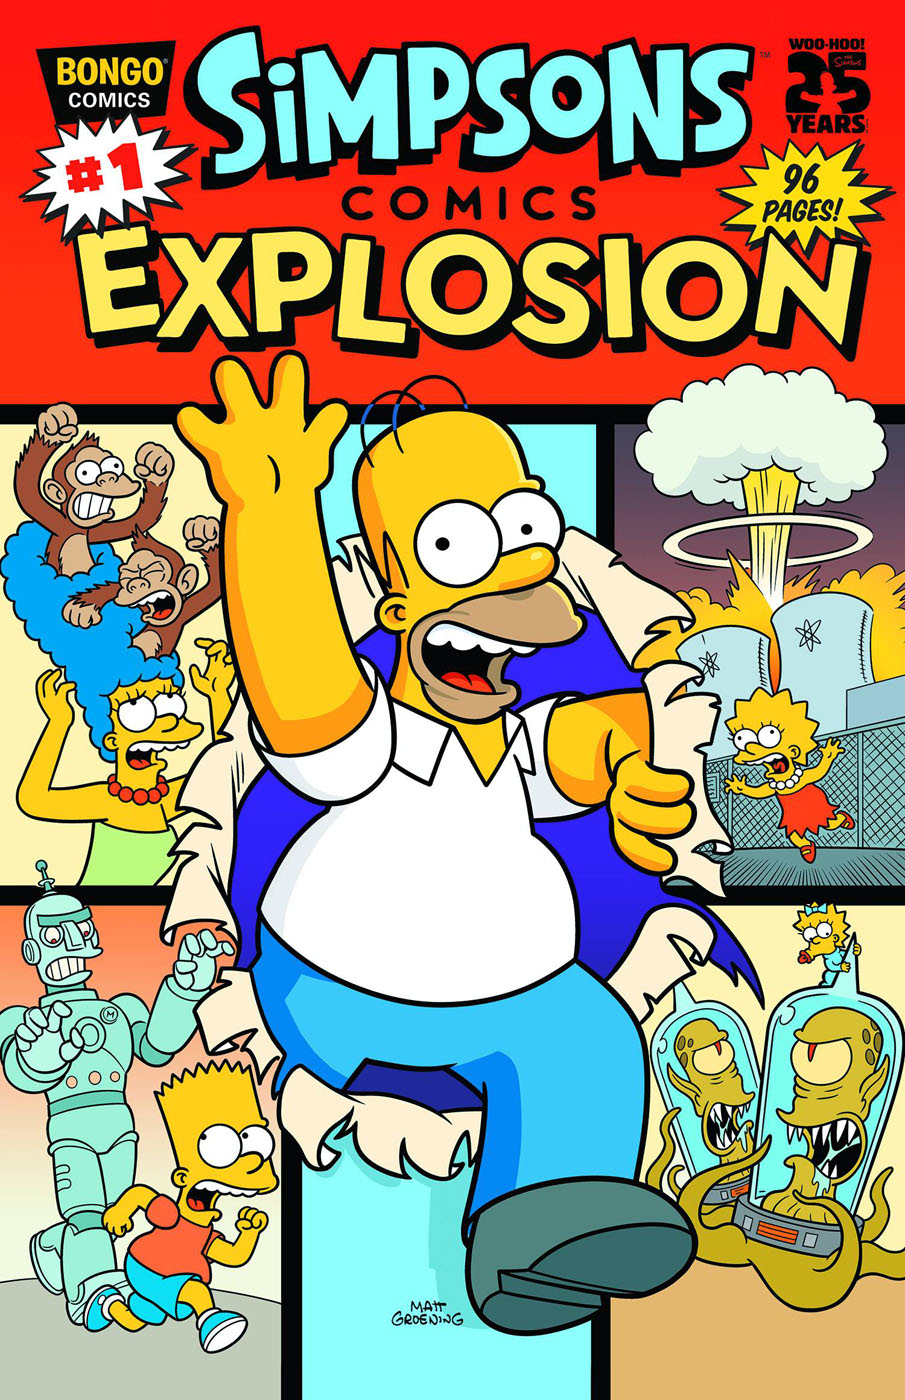 Simpsons Comics Explosion 1 Wikisimpsons The Simpsons Wiki